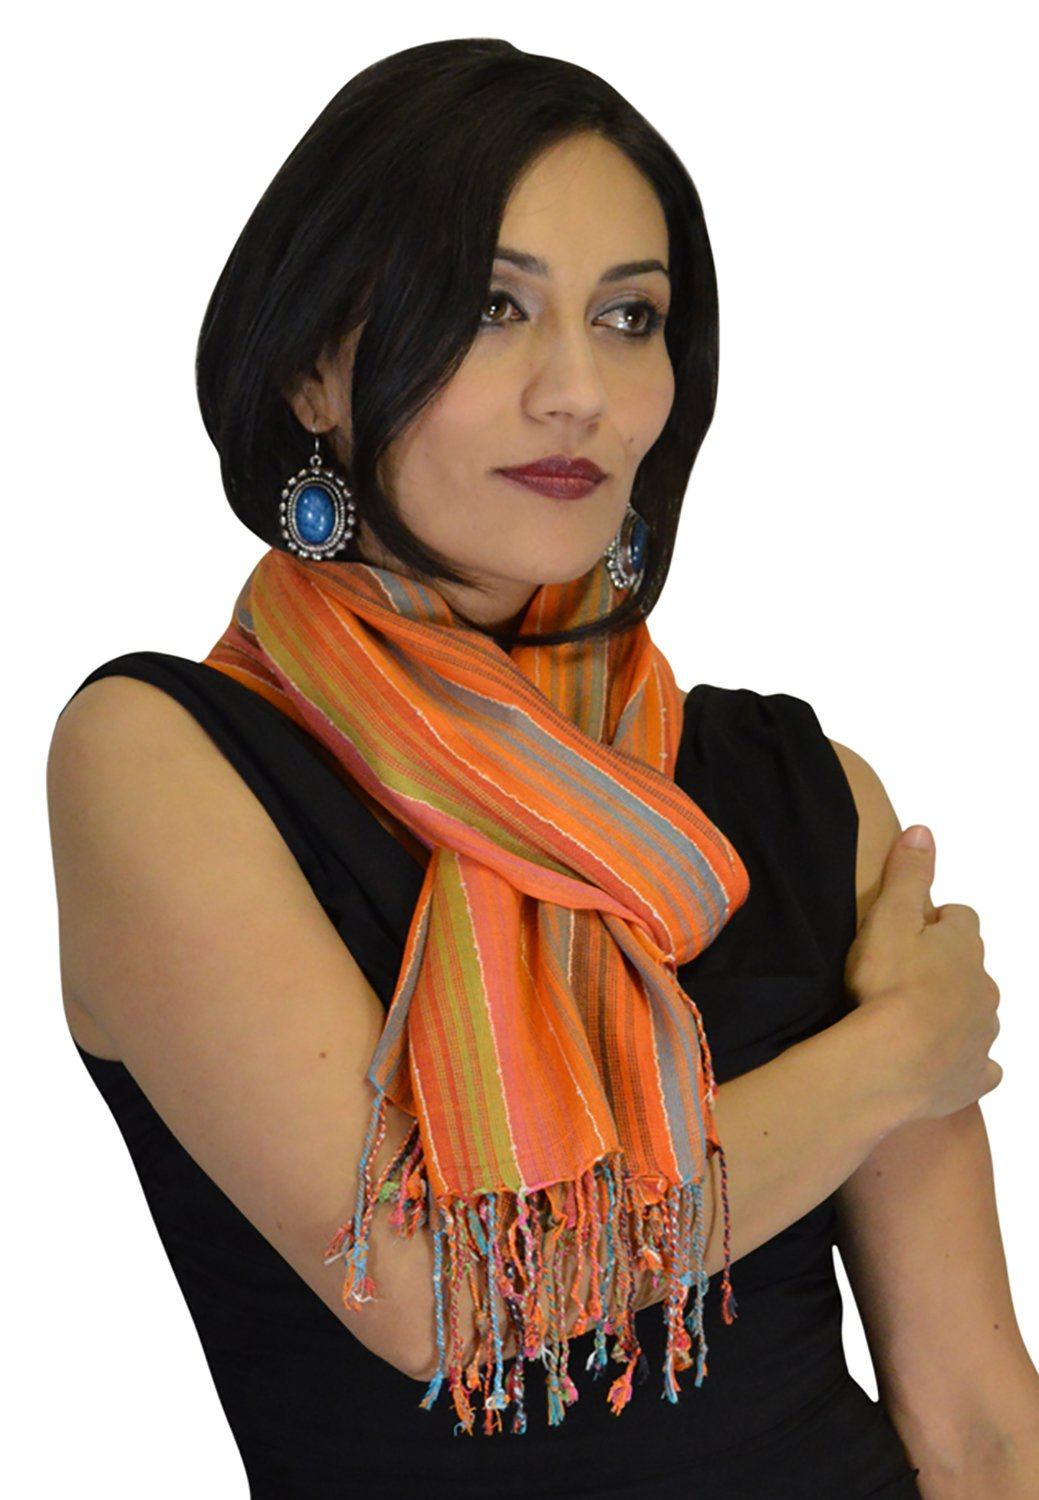 Moroccan Shoulder Shawl Breathable Oblong Head Scarf cotton Exquisite Wrap by Treasures of Morocco Shawls (Image #4)